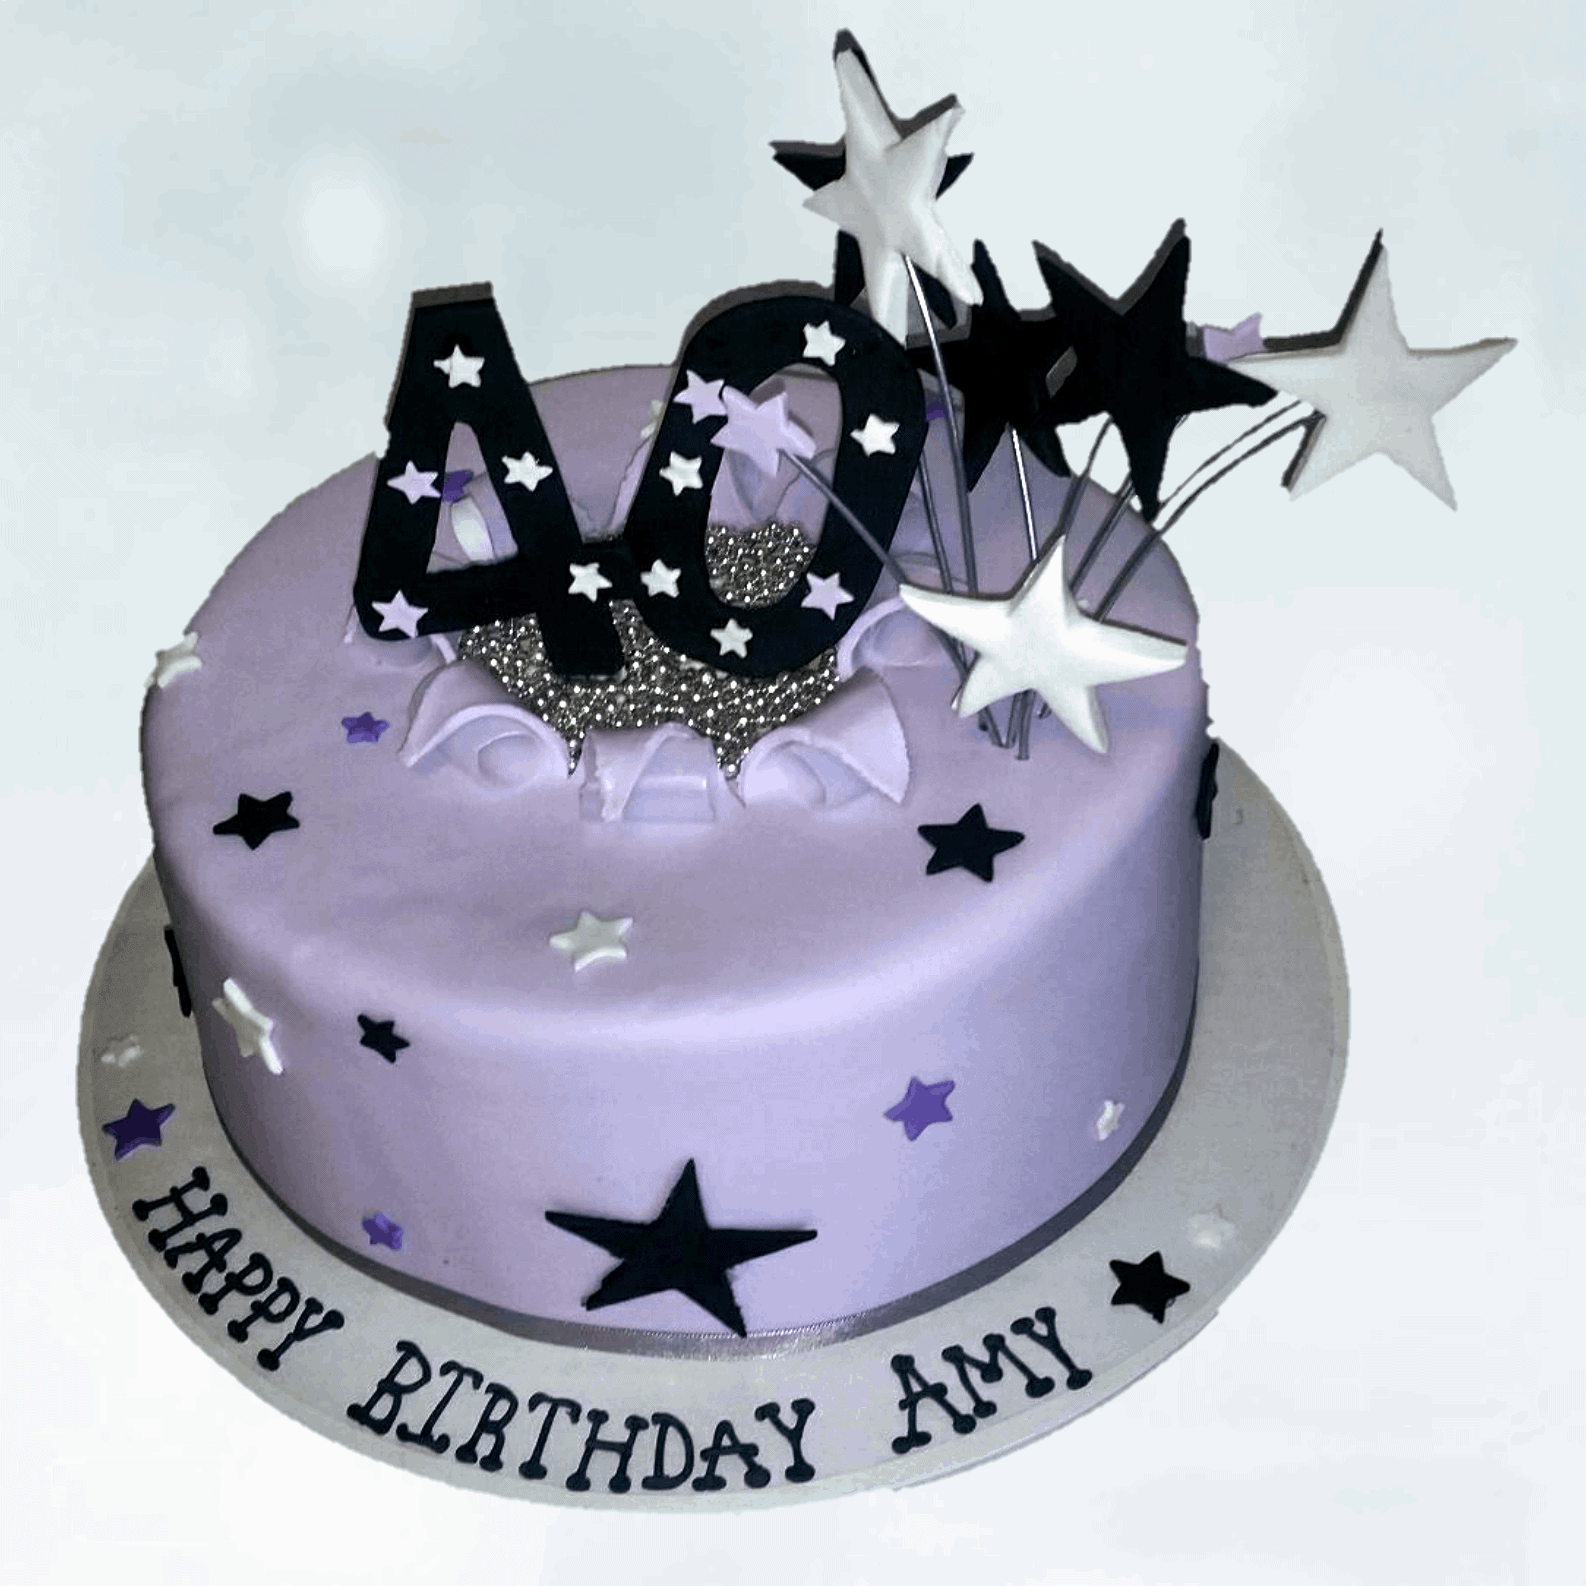 Number 40 and stars burting through a lavender fondant covered cake with stars on the face of the cake